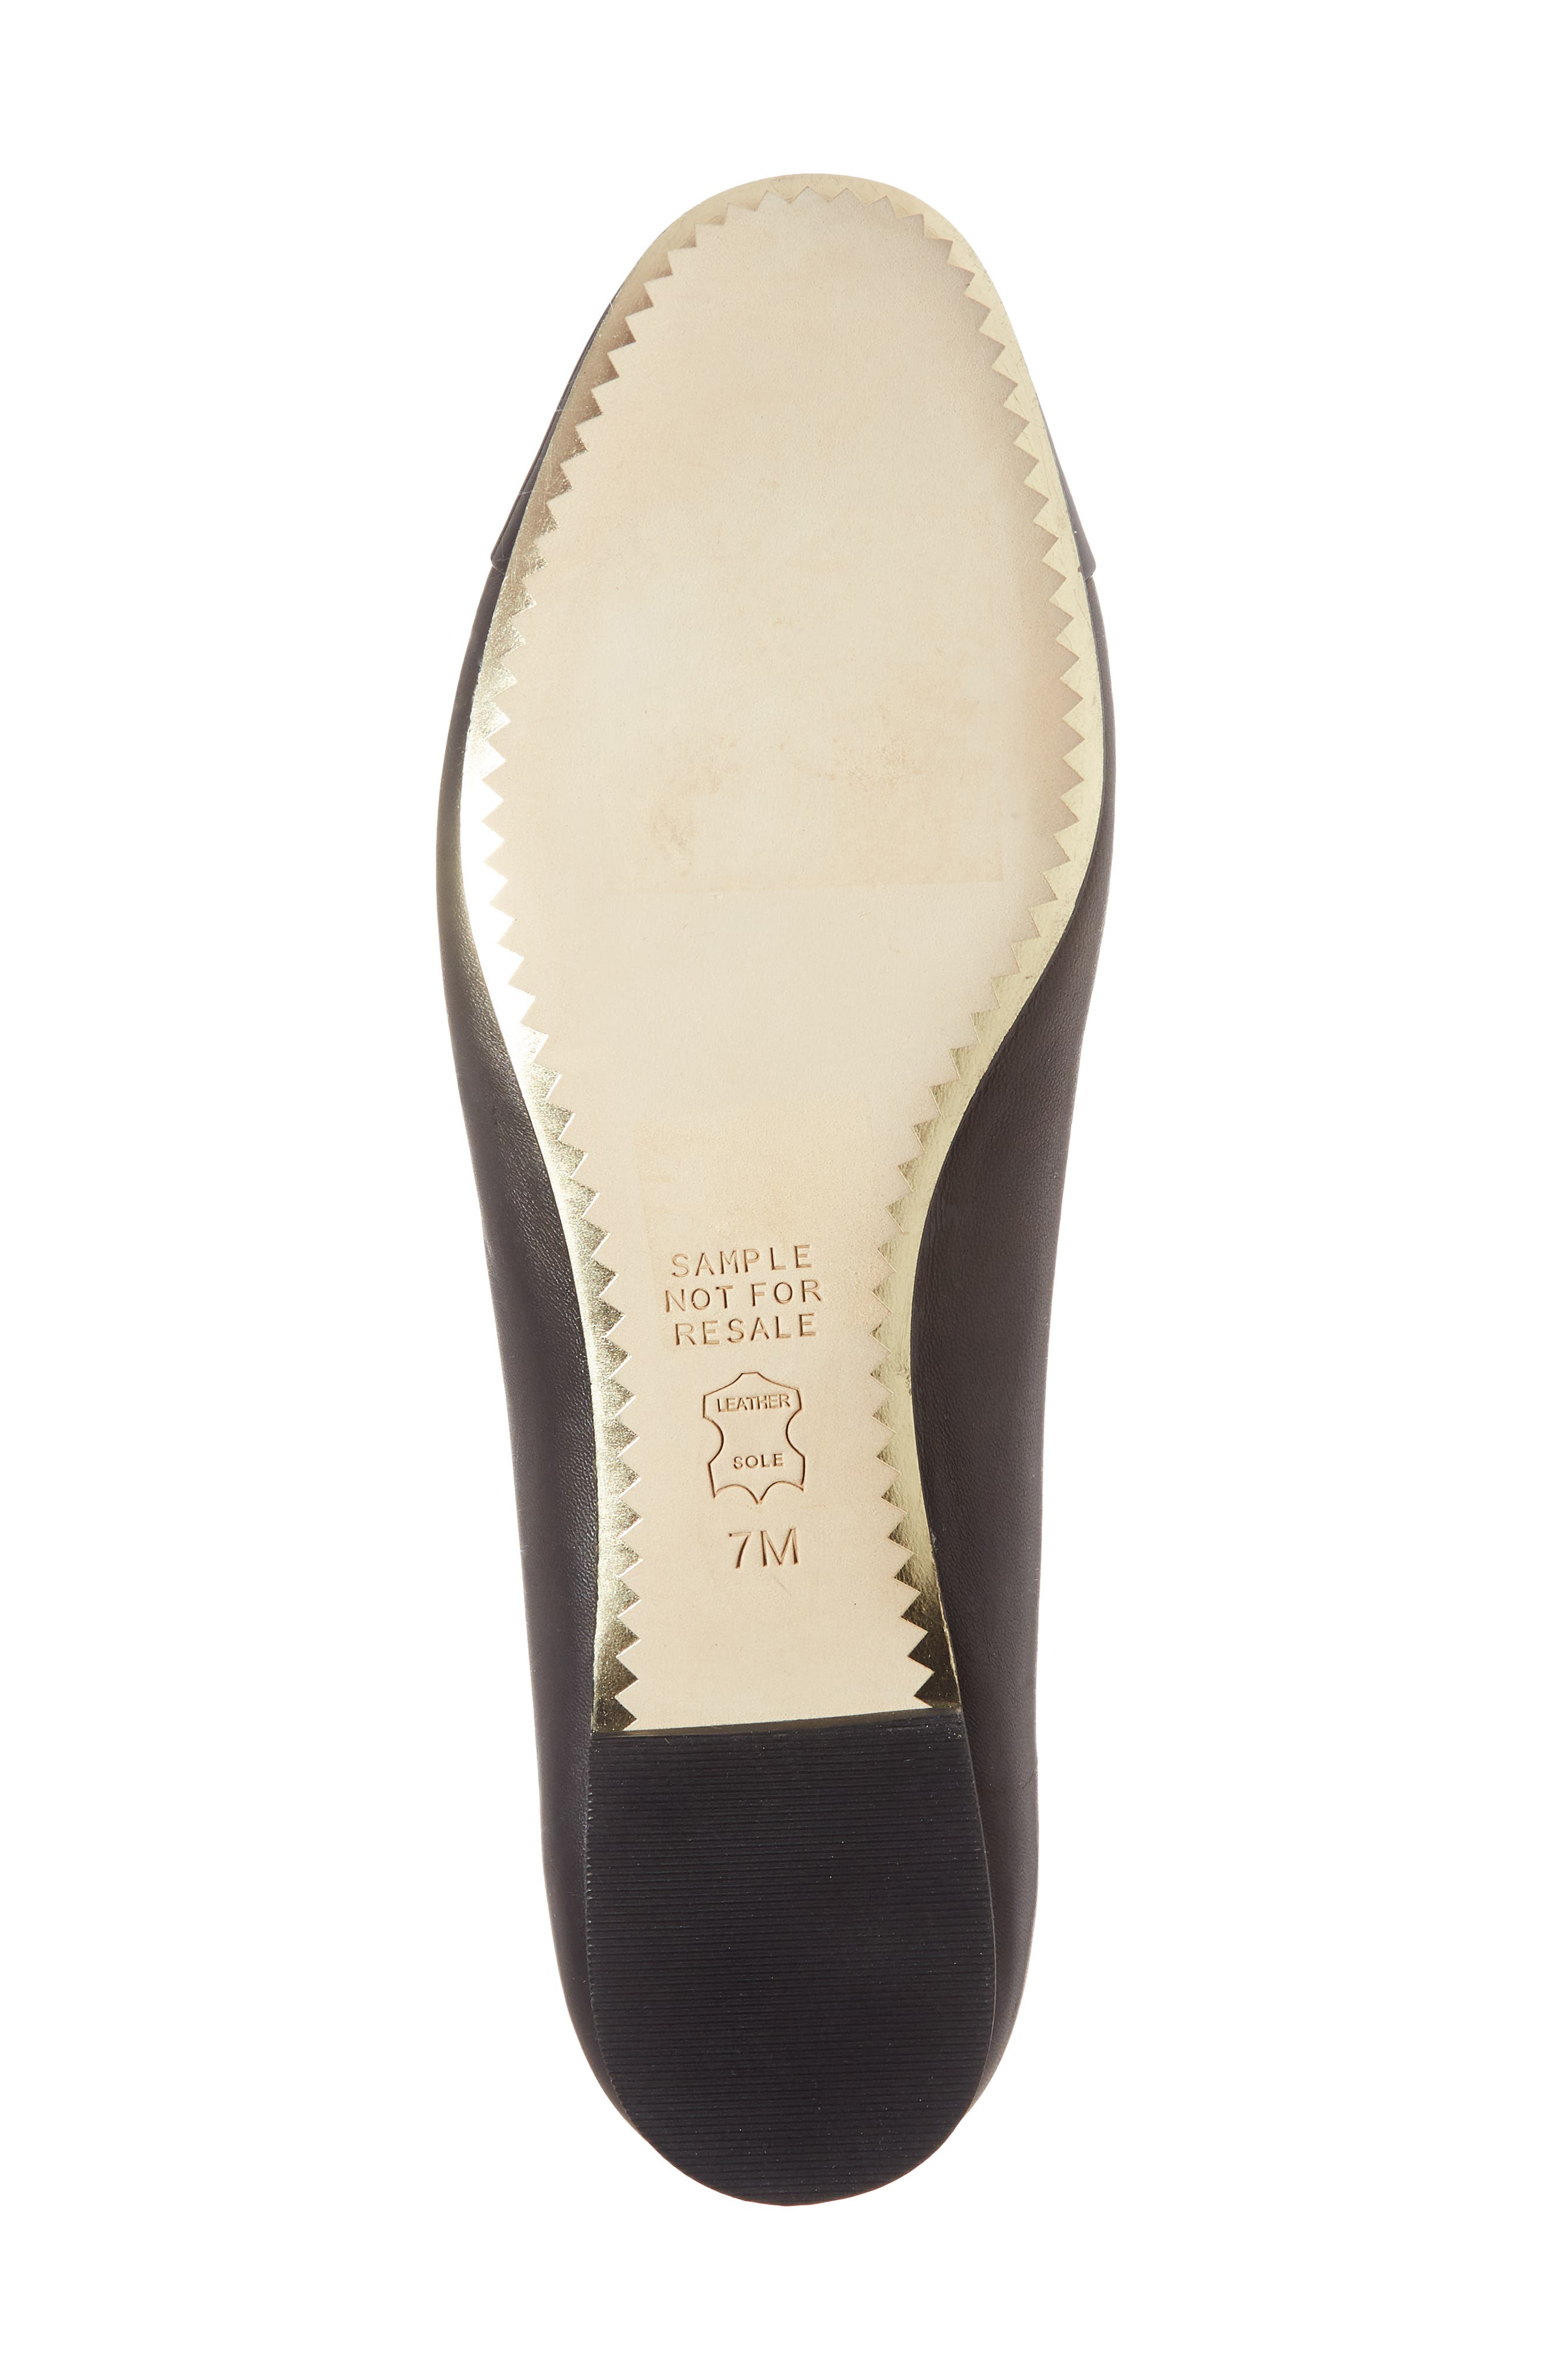 TORY BURCH, Chelsea Cap Toe Ballet Flat, Alternate thumbnail 6, color, BLACK